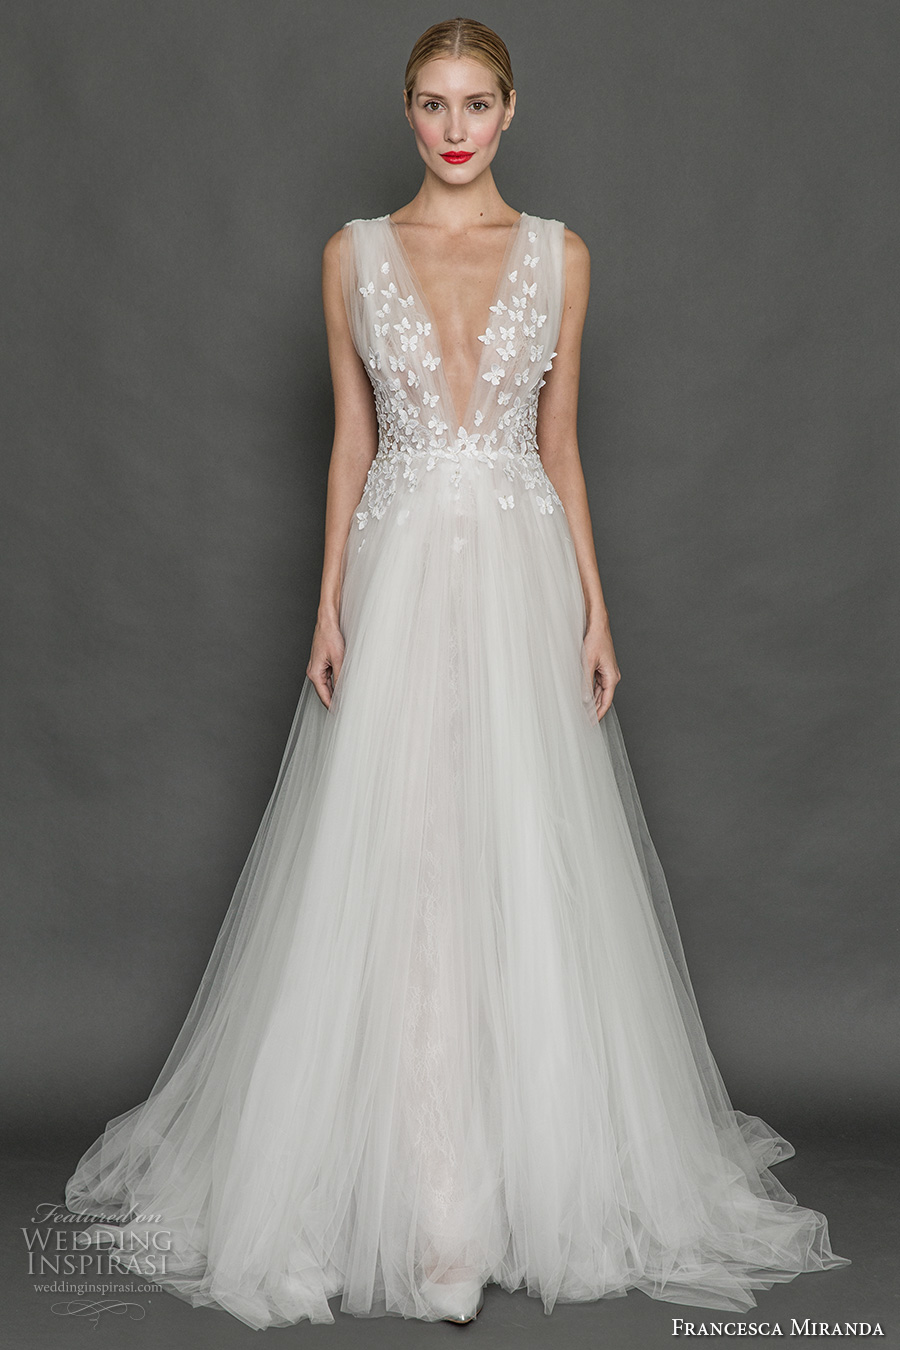 Francesca miranda fall wedding dresses